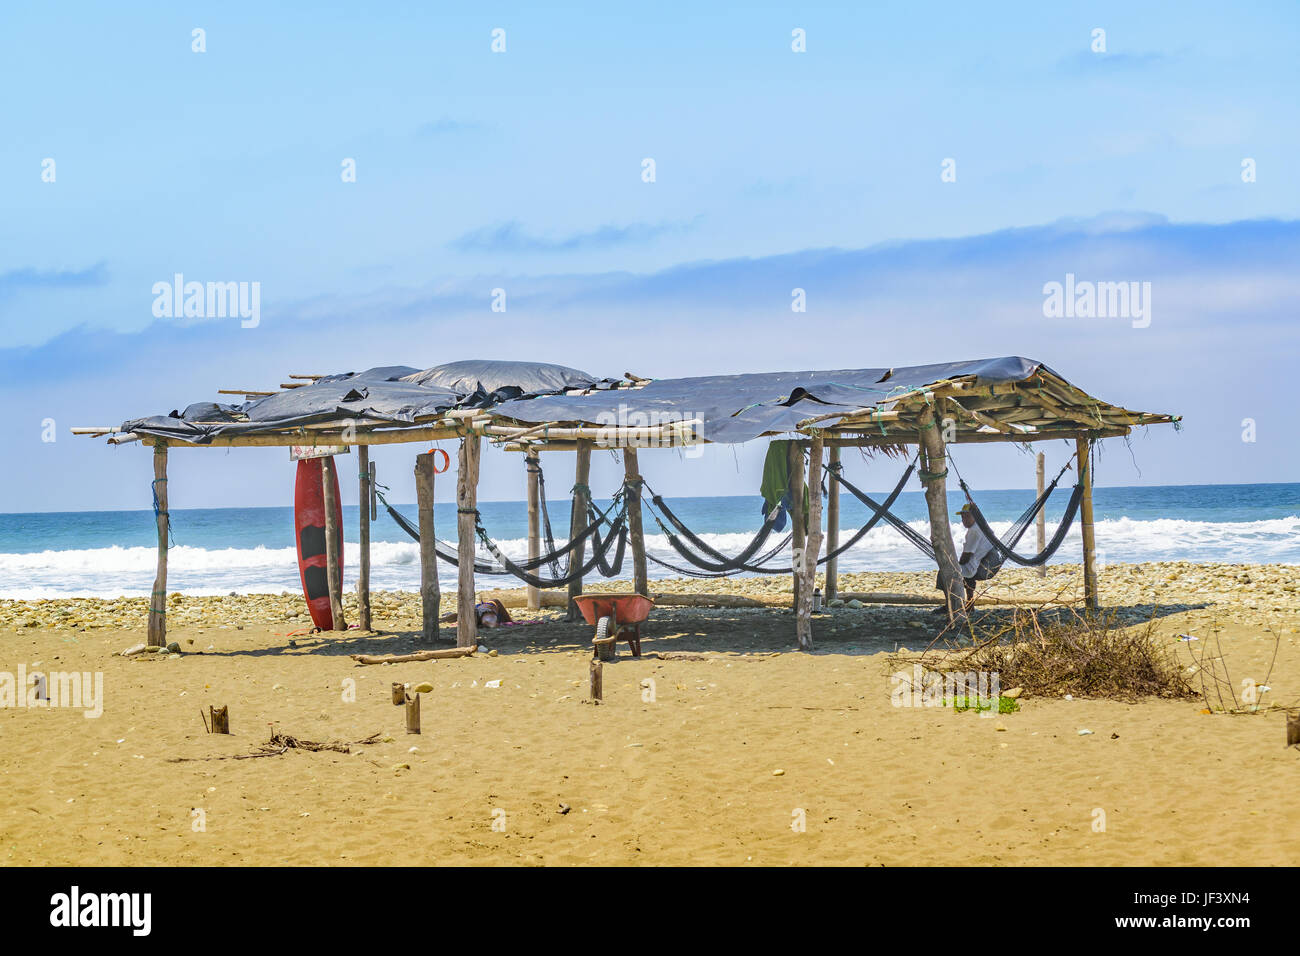 Rustic Hut at Beach Santa Elena Ecuador - Stock Image